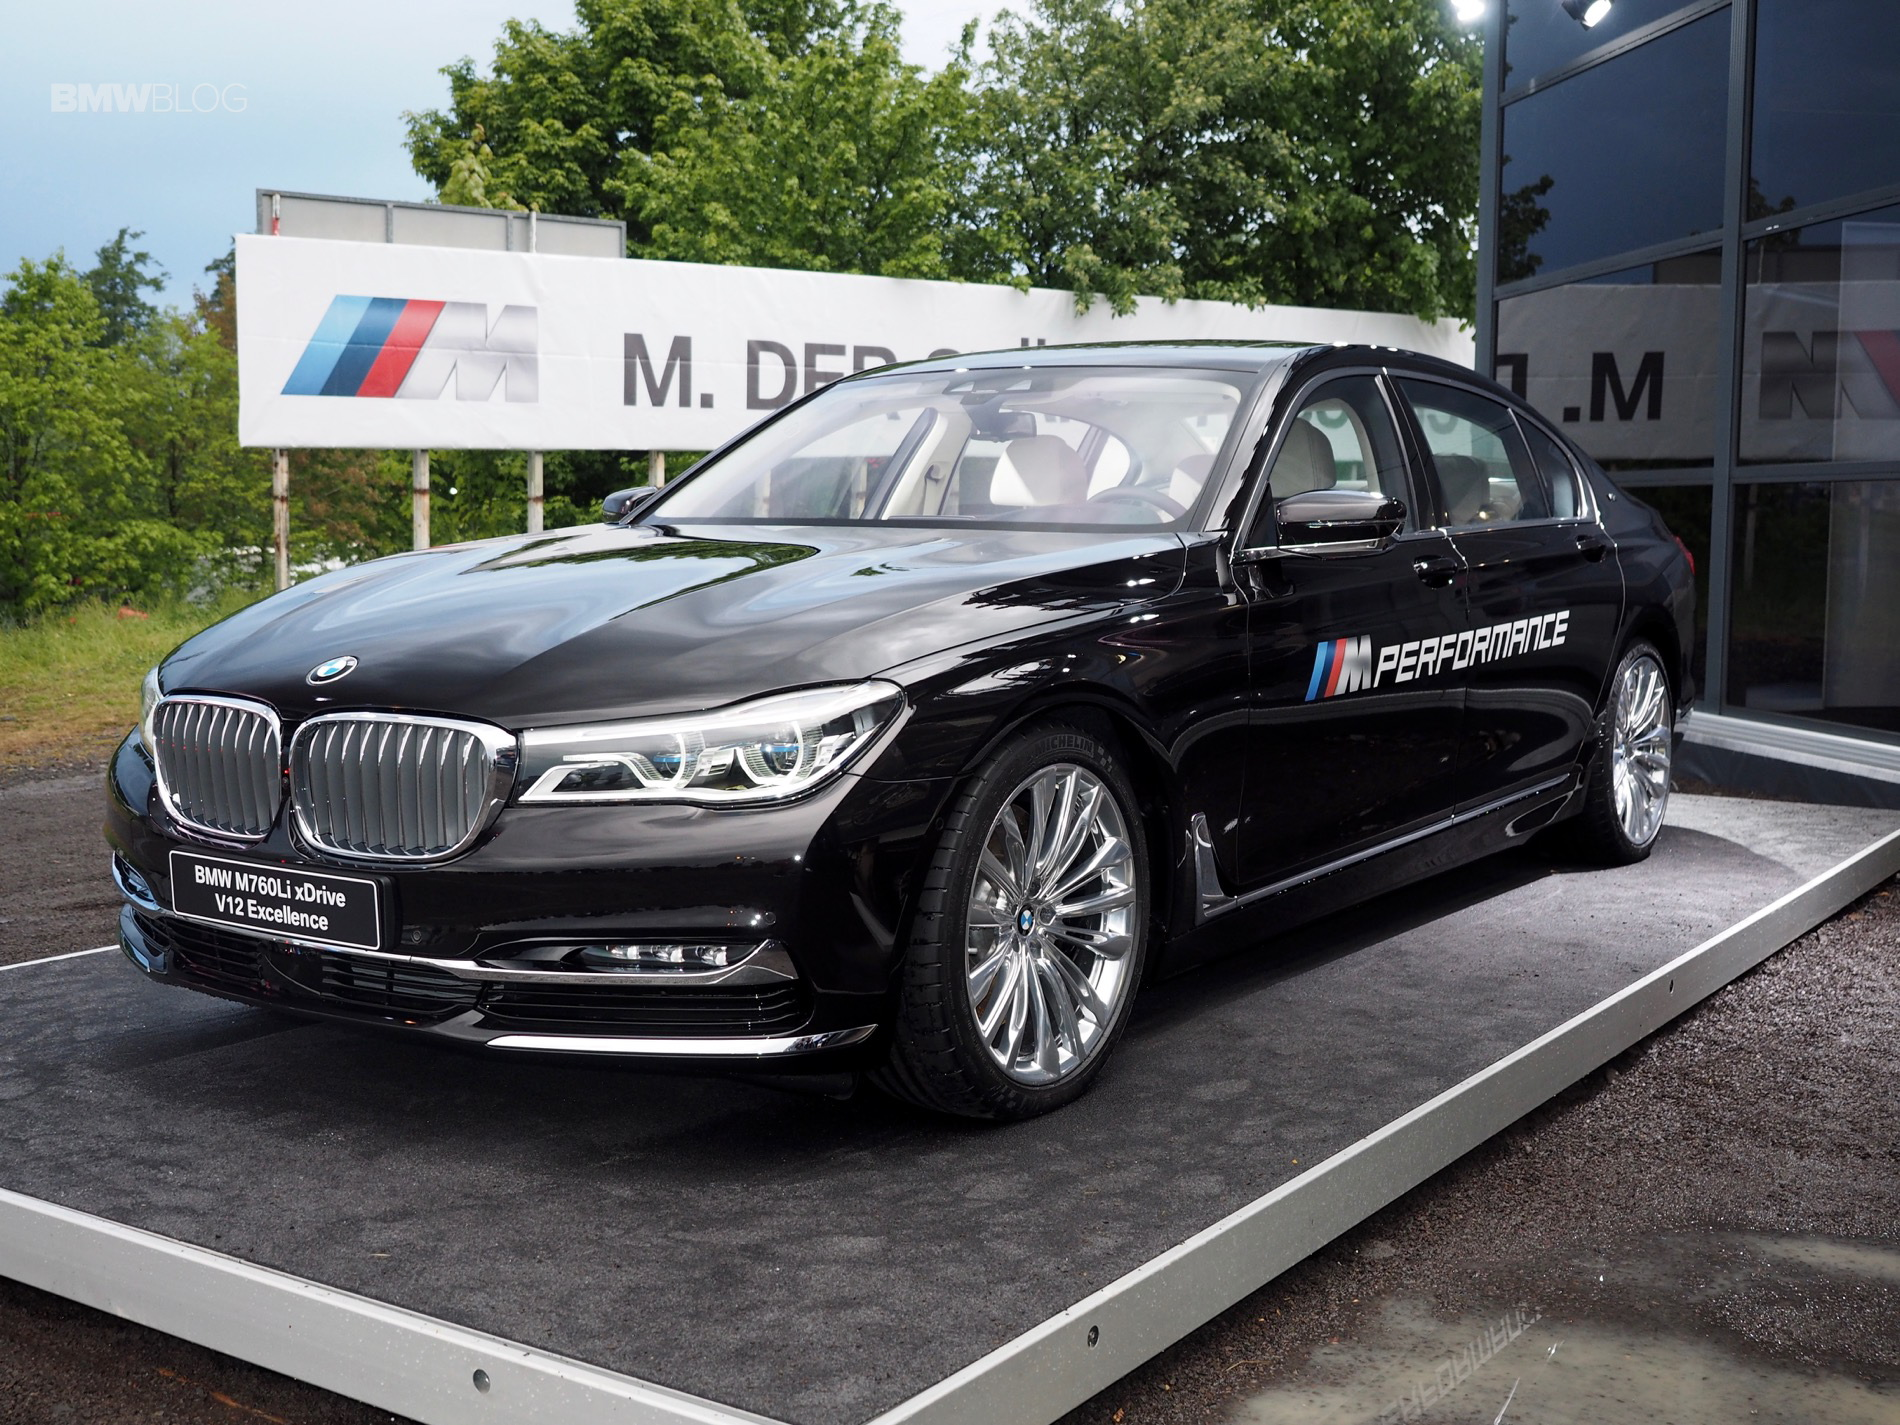 Bmw M760li Xdrive Displayed At M Festival